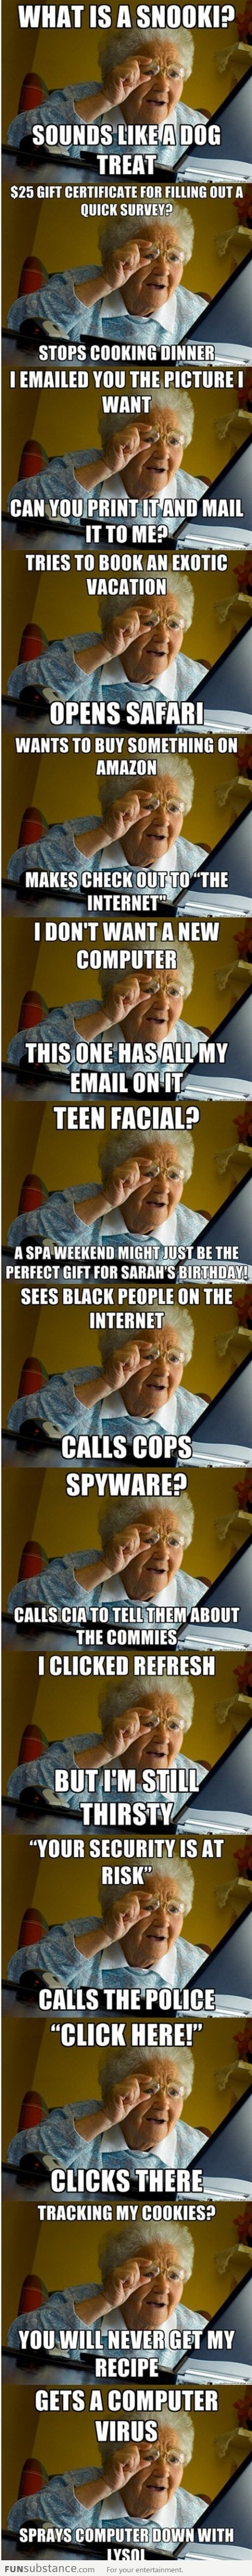 Internet Grandma Surprises Compilation